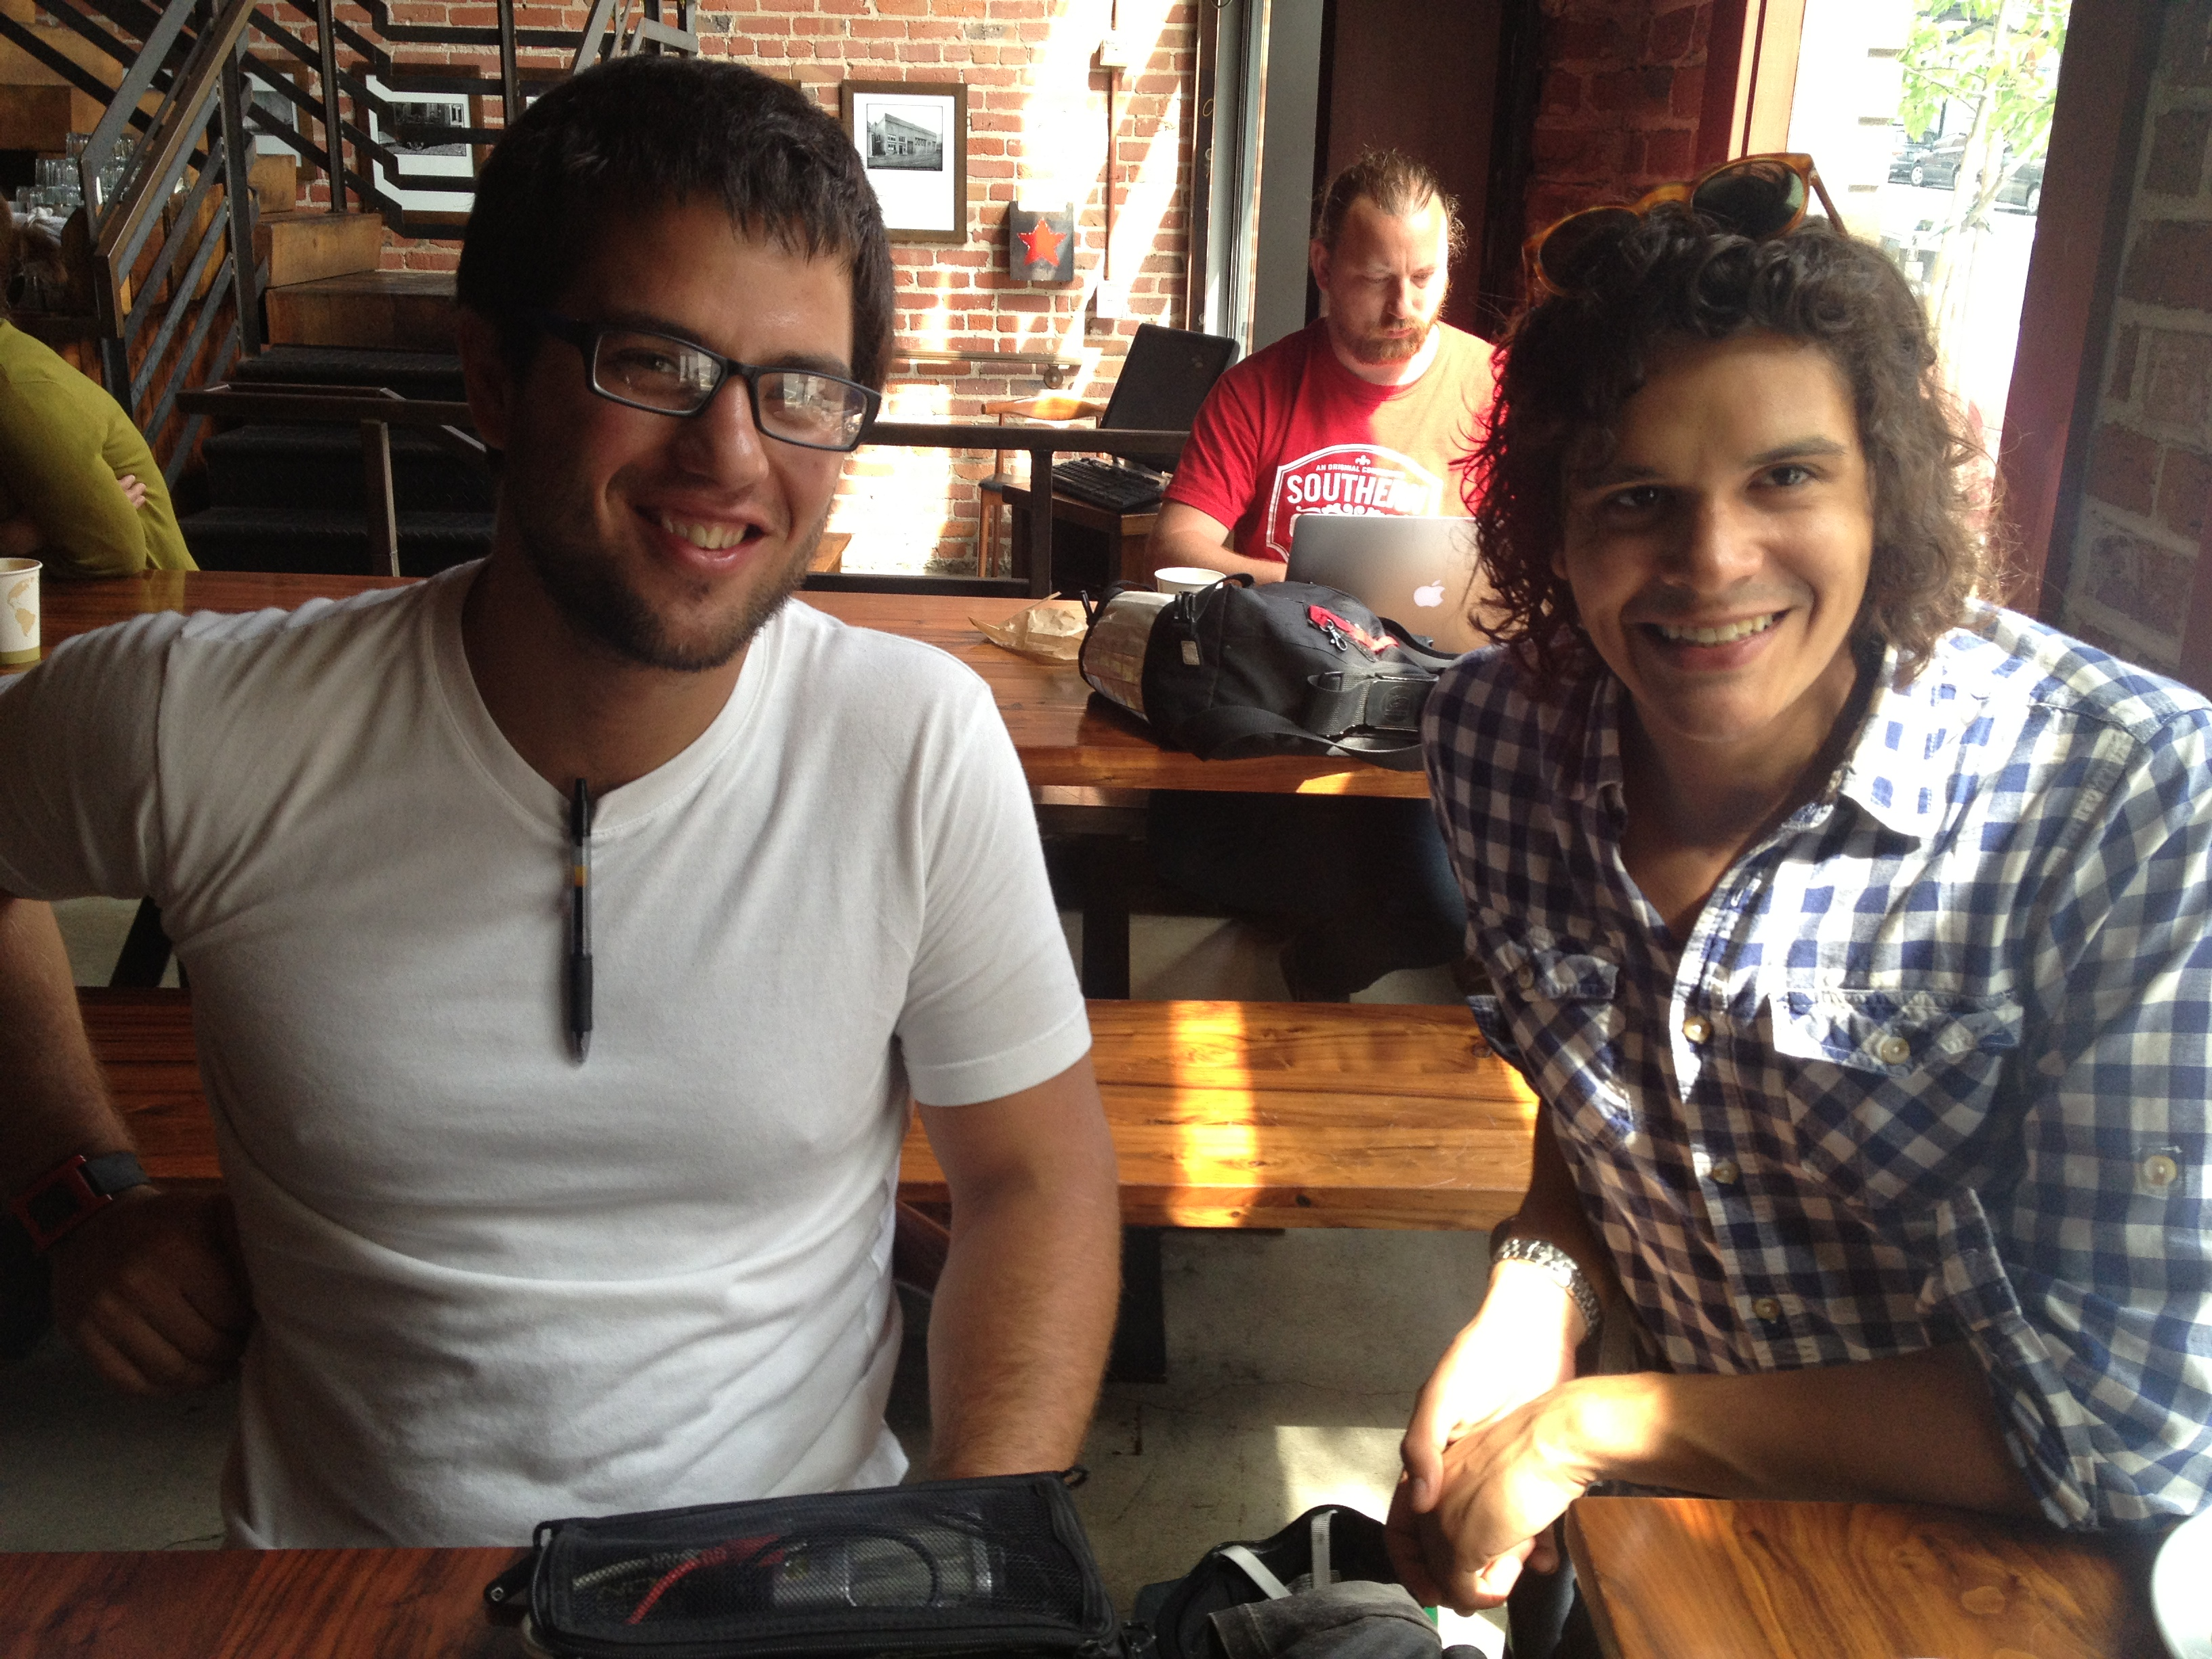 Re:char CTO Luke Iseman (L) and founder/CEO Jason Aramburu (R) showing off an early prototype of SoilIQ